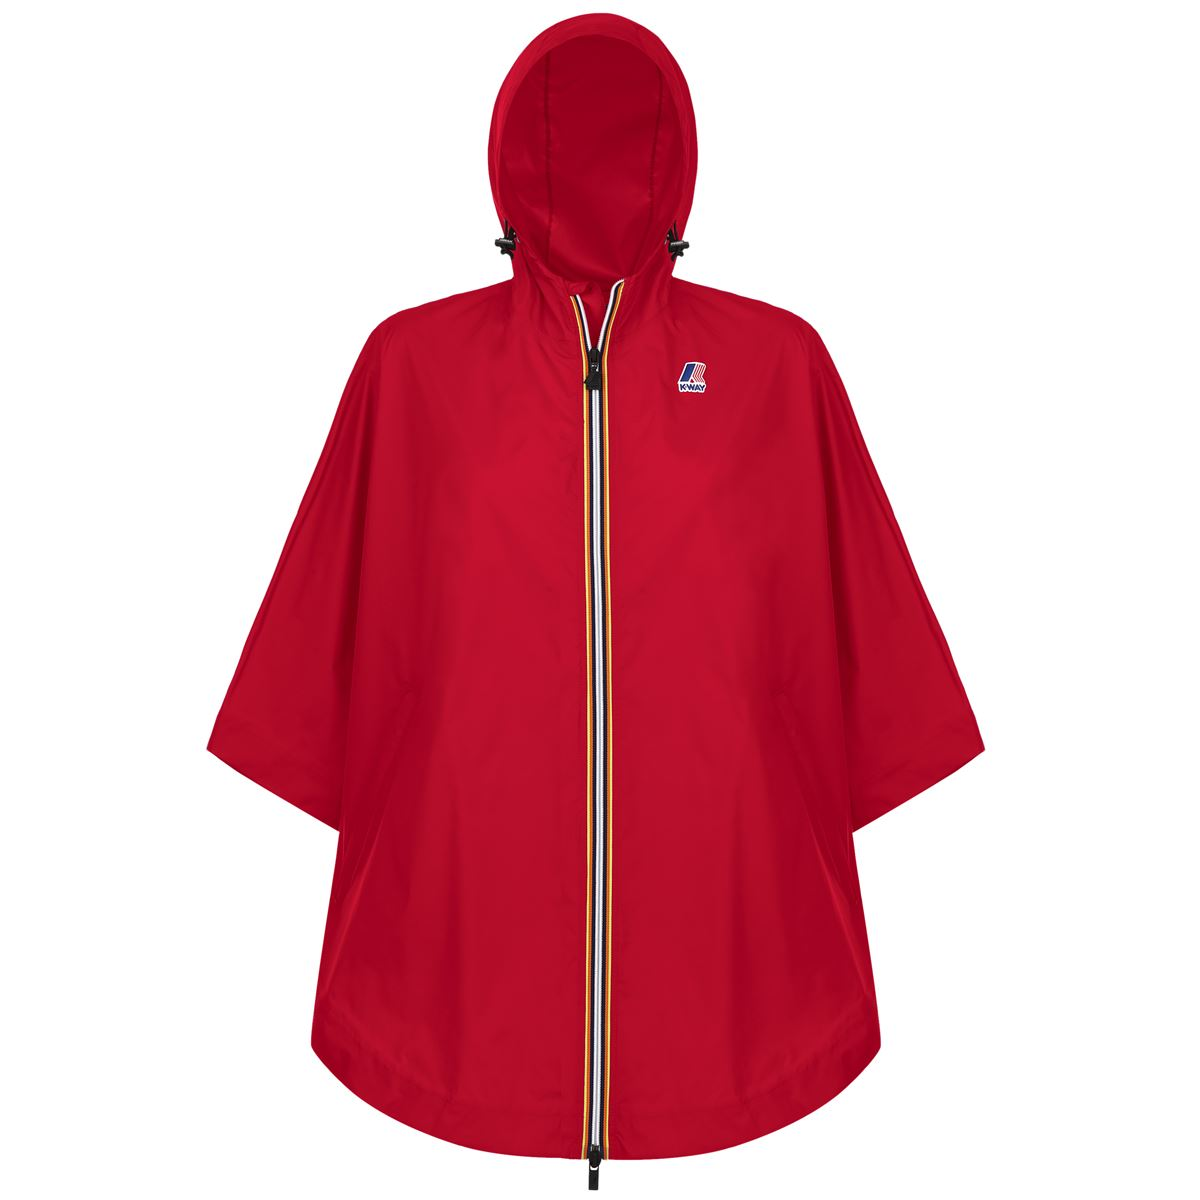 K-Way Jacket LE VRAI 3.0 MORGAN Poncho Junior Boy Girl